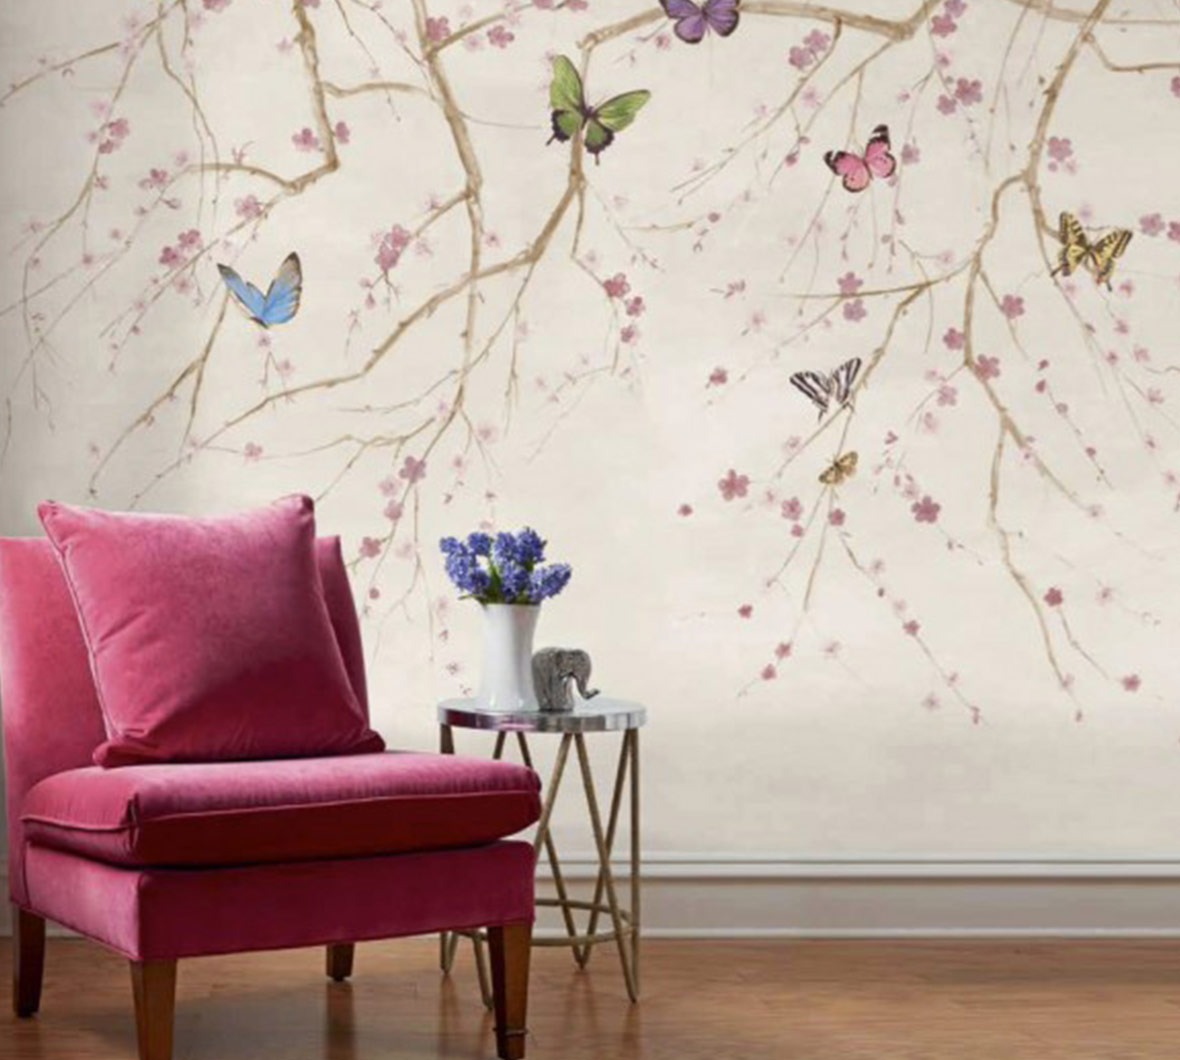 Chelsea Lane: A New Designer collection of Fabrics & Wallpapers by Jaima Brown Home